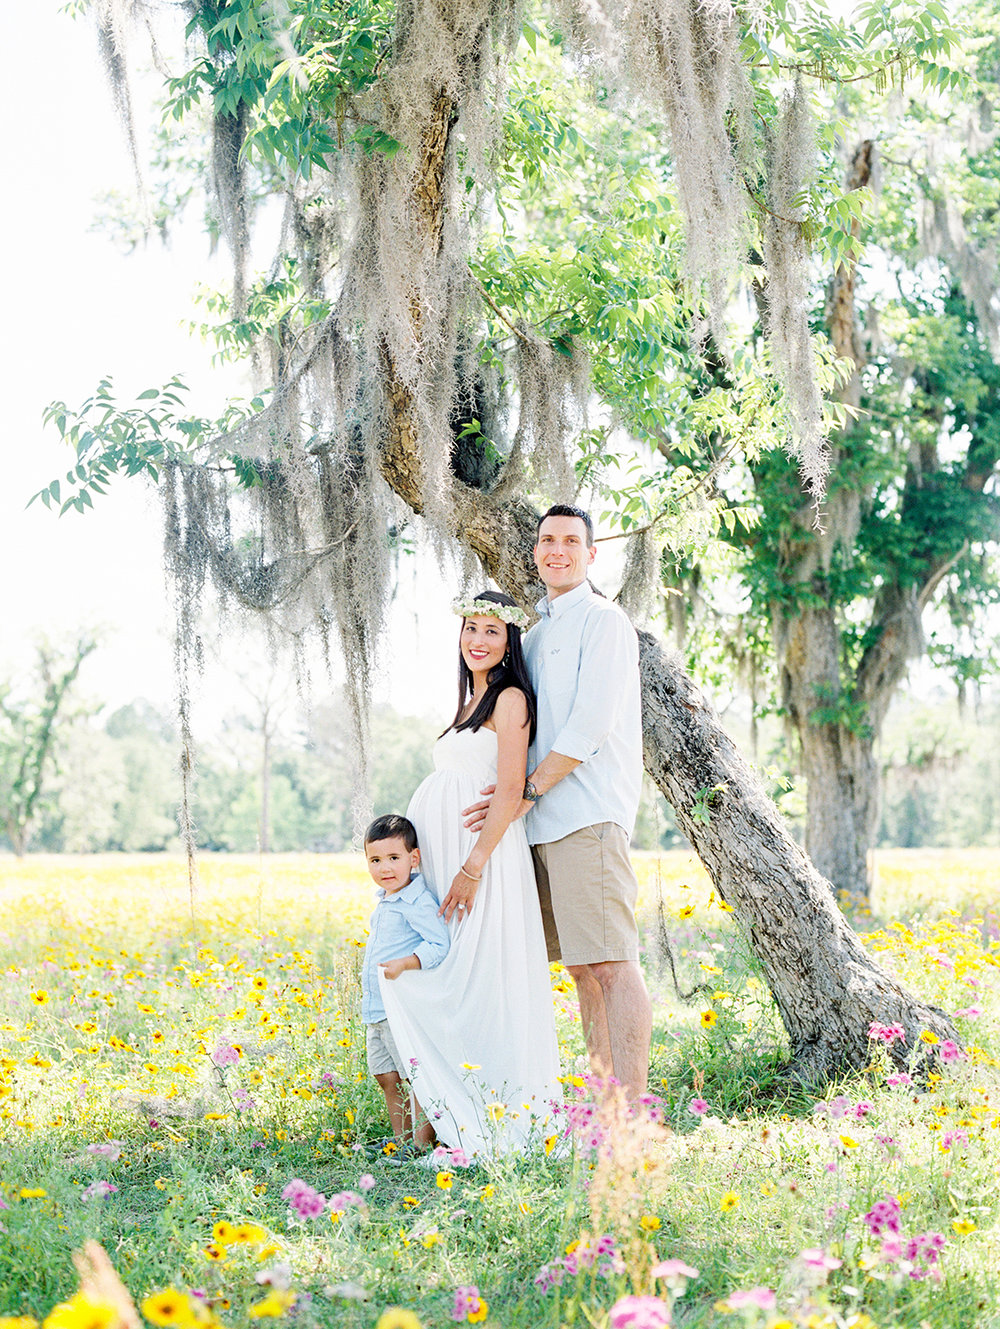 Family Maternity Session in a Flower Field- Lisa Silva Photography- Jacksonville and St. Augustine Florida Fine Art Film Photography- 1.jpg